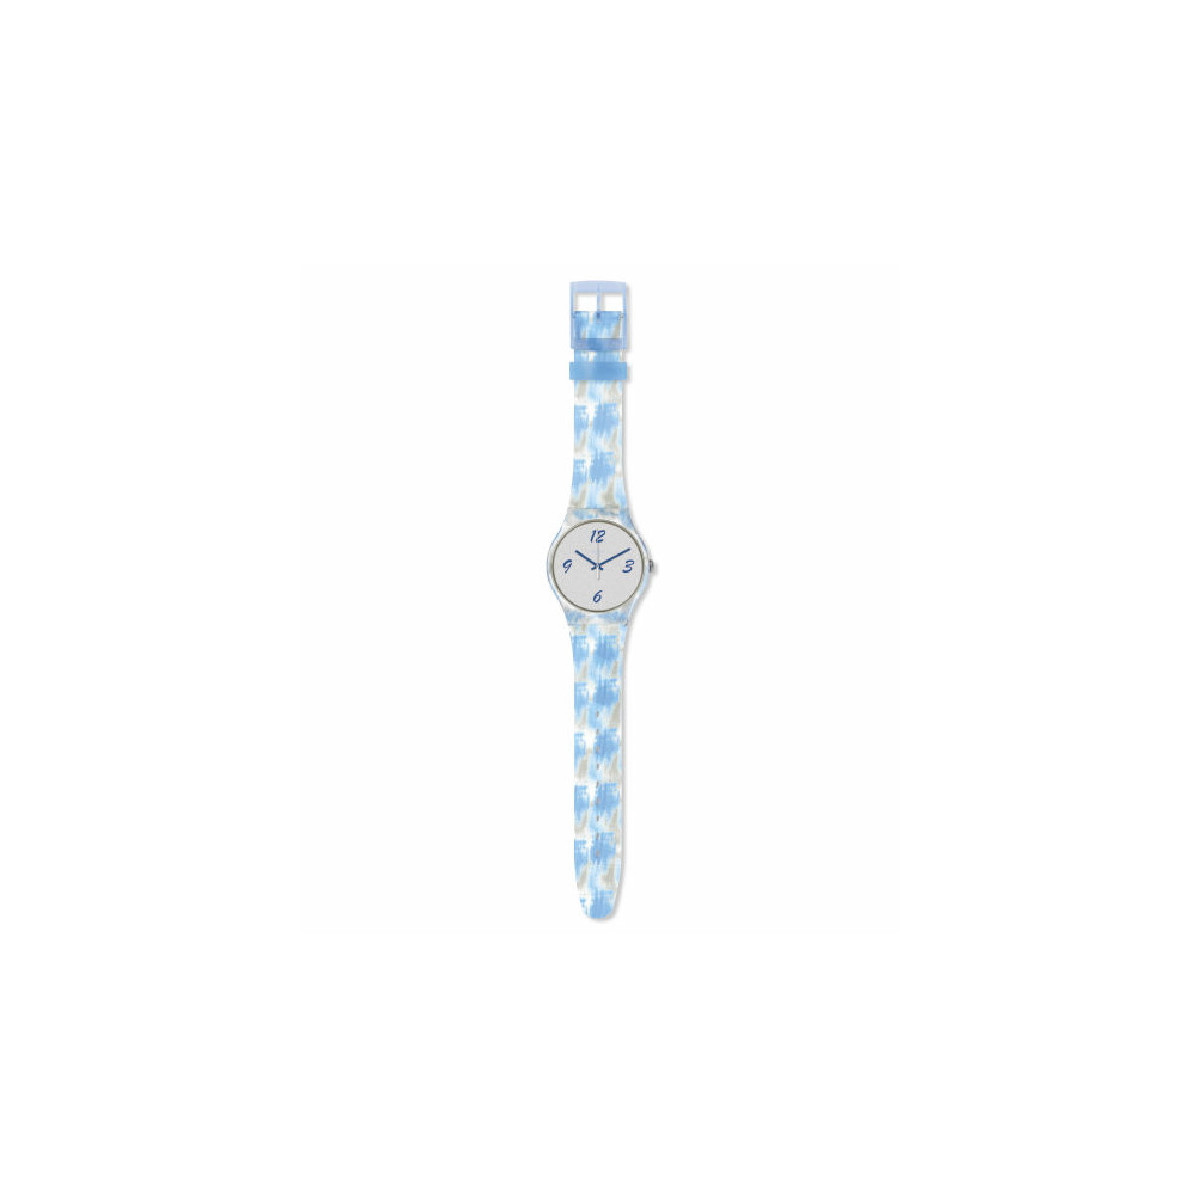 SWATCH_BLUQUARELLE_SUOW149_Outlet_50%